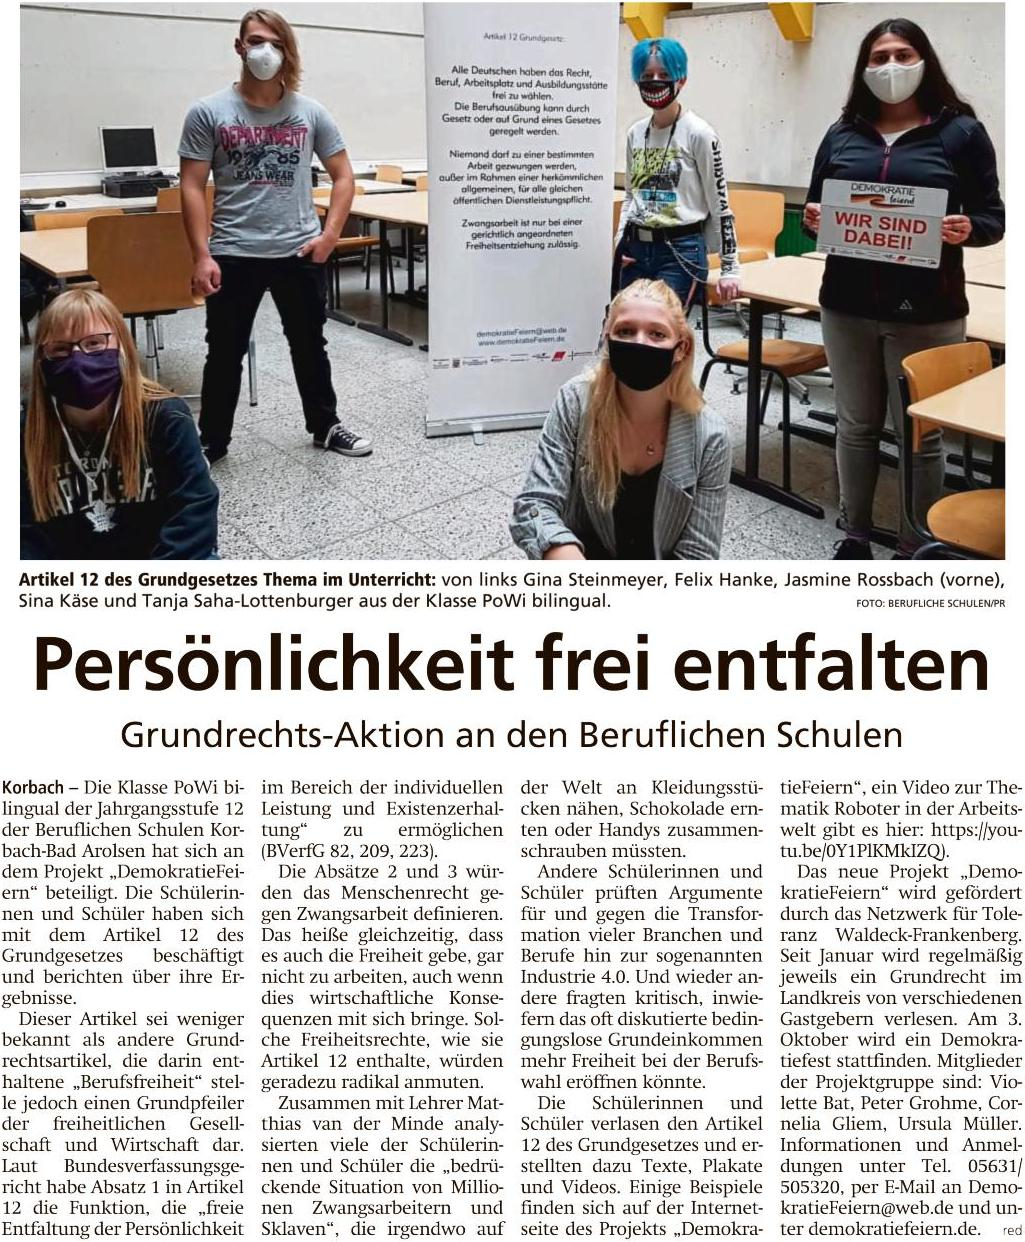 2020-07-20-wlz-grundrechtsaktion.jpg